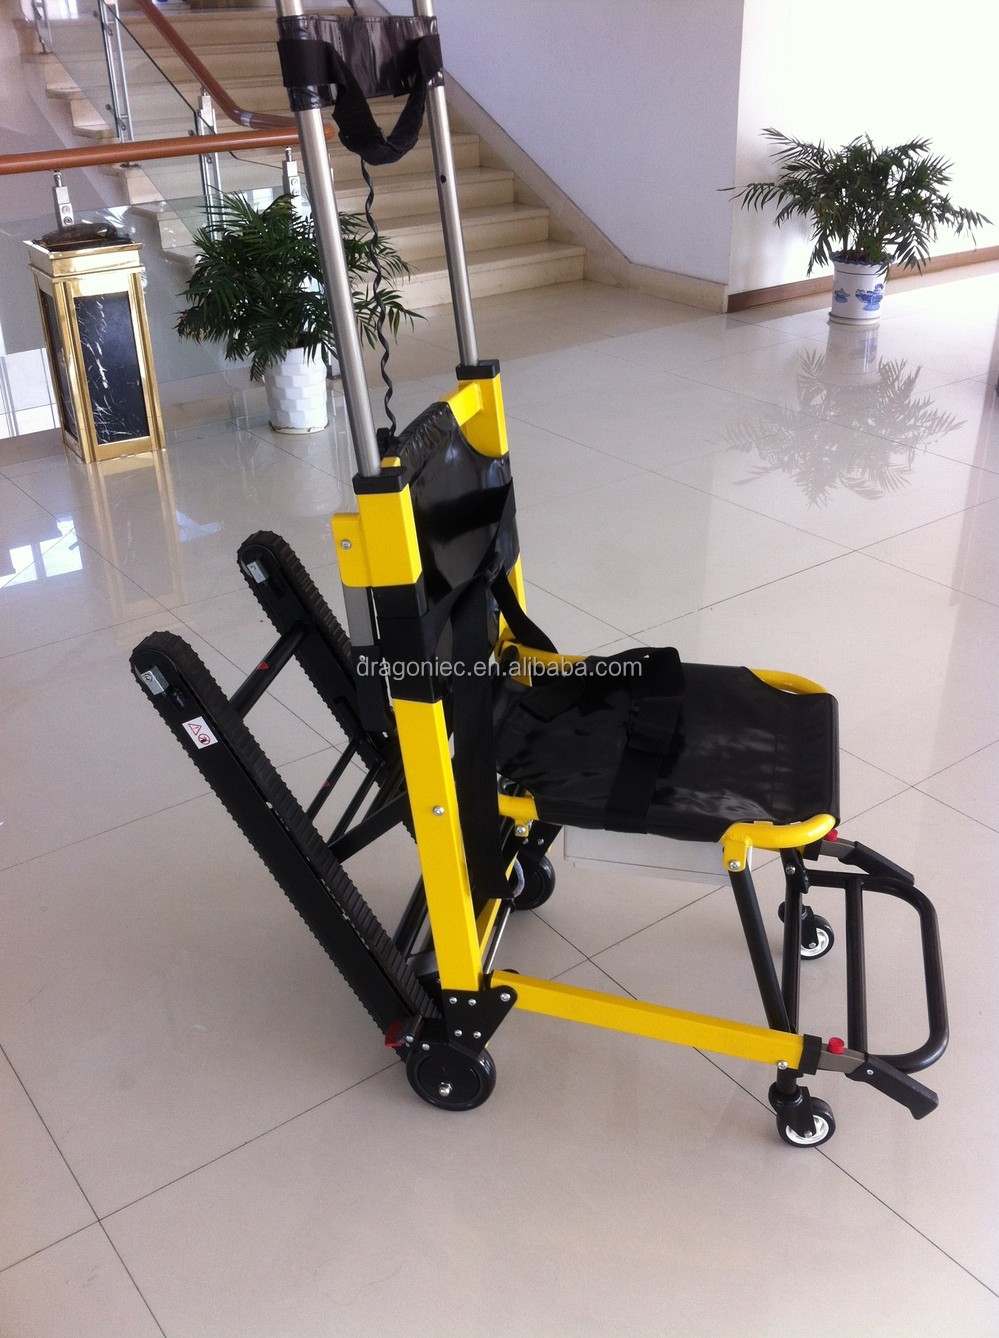 Alibaba manufacturer directory suppliers manufacturers for Motorized chair stair climber electric evacuation wheelchair electric wheelchair